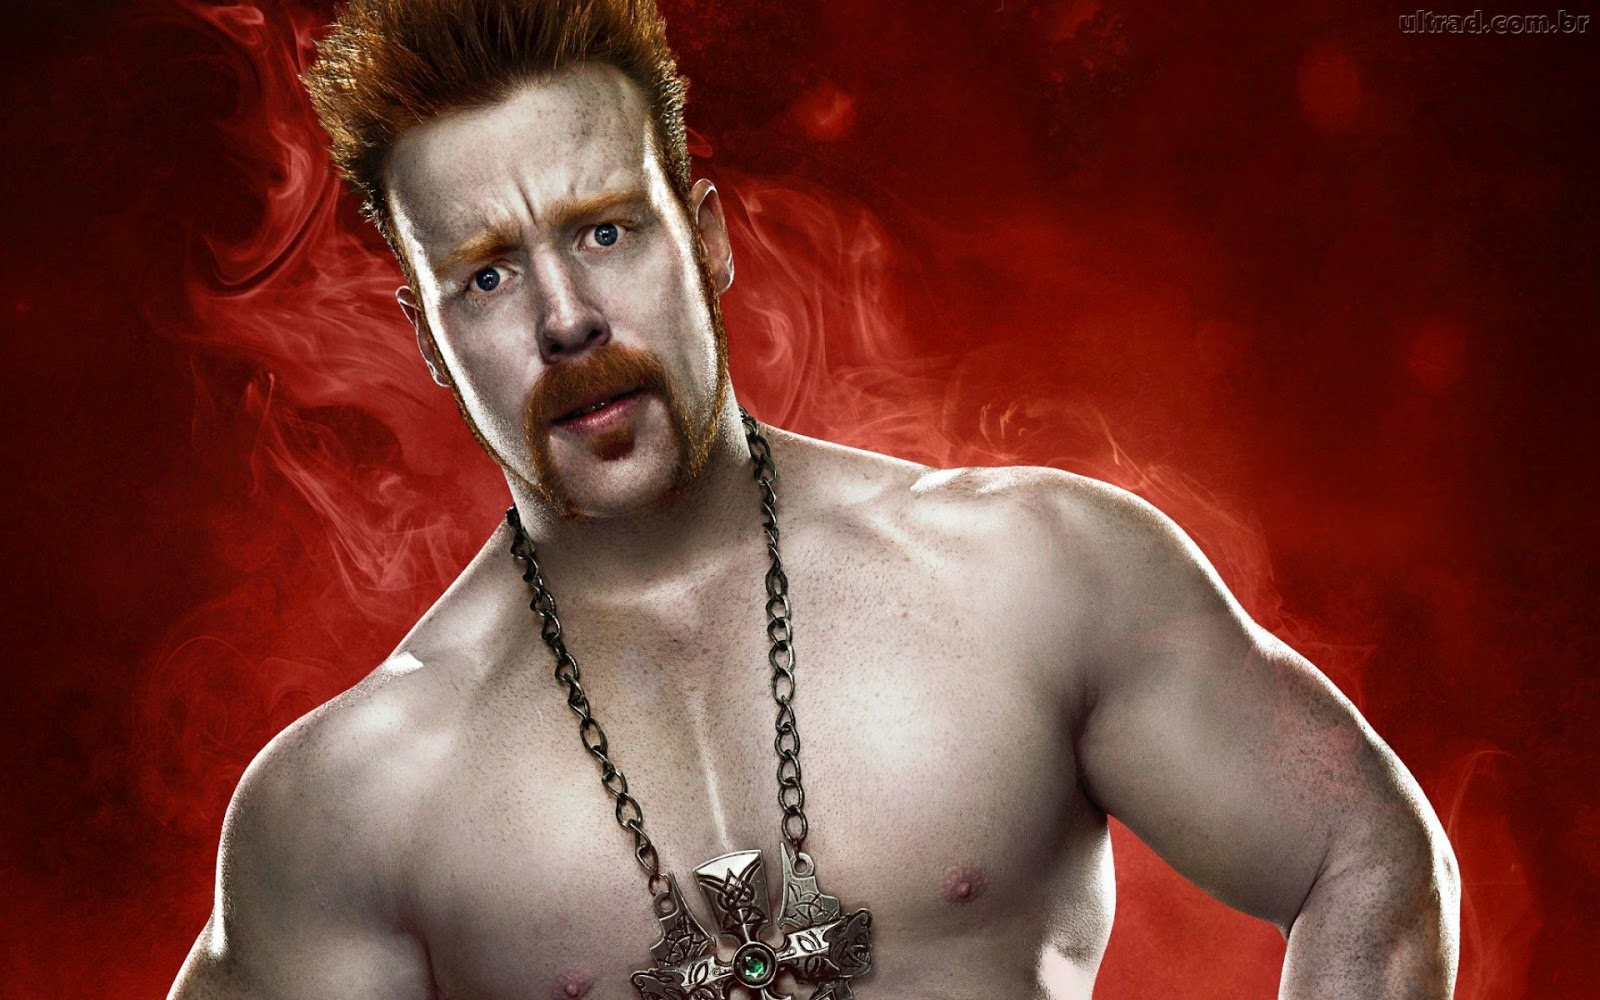 wwe sheamus wallpaper - free all hd wallpapers download